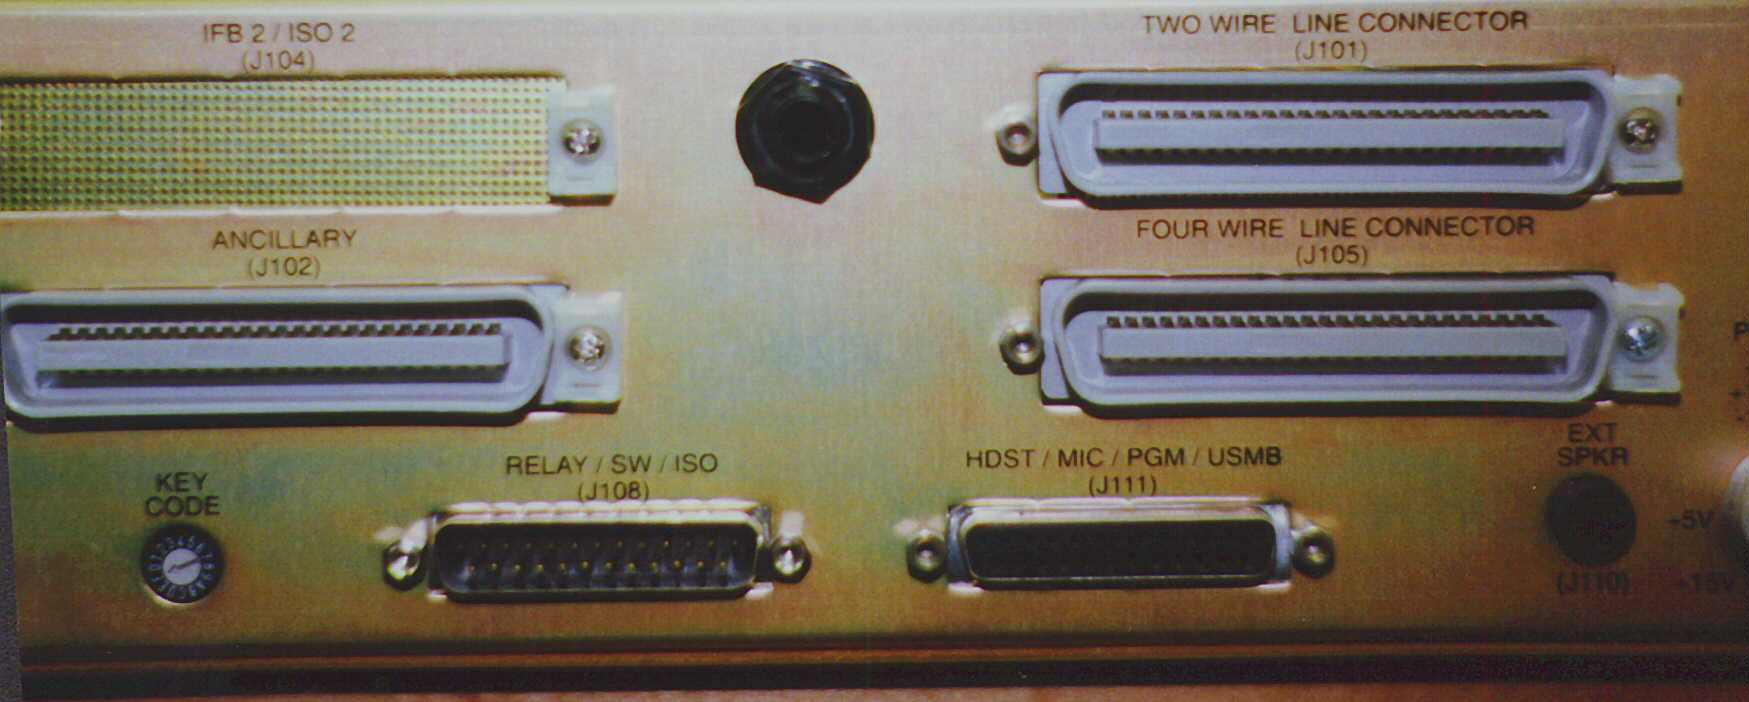 Telex Rts Pinouts Intercom Wiring Diagram J111 Is The Female Db 25 Connector On Right Side Of Lower Part Chassis Usmb Output Used To Feed An 4000 Series Ifb Panel Or It